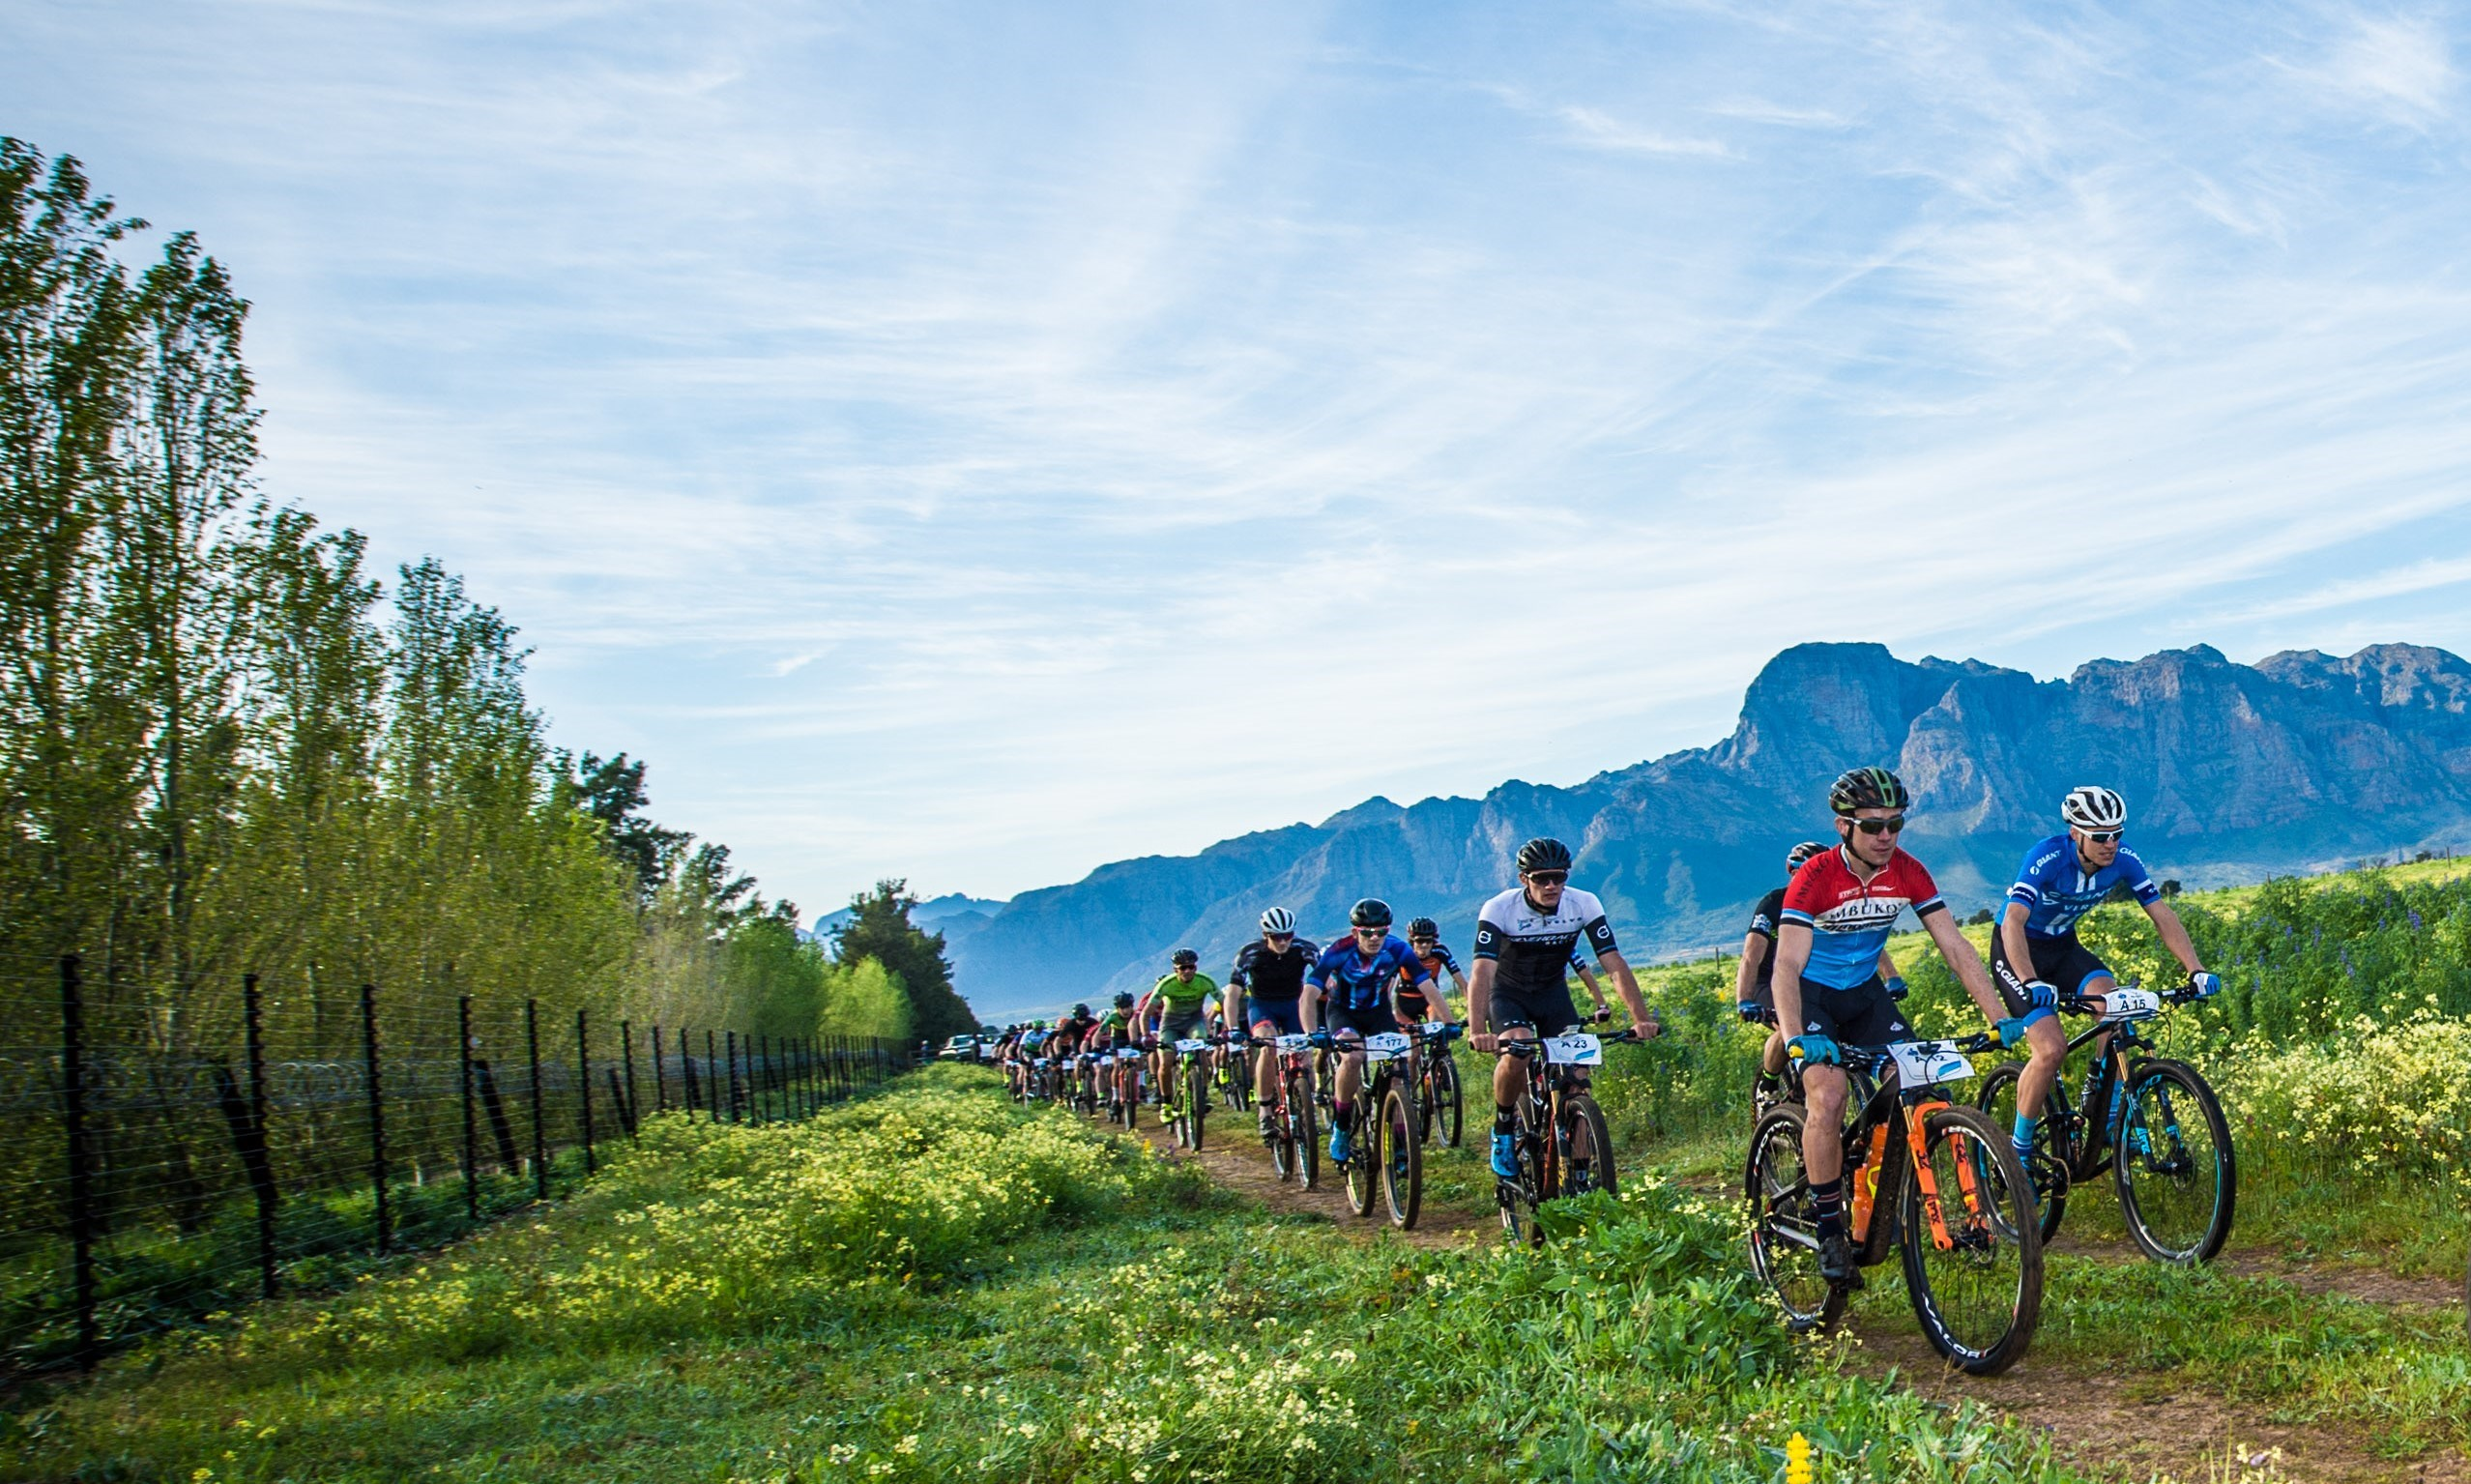 Entries open for 5th annual Fedhealth MTB Challenge